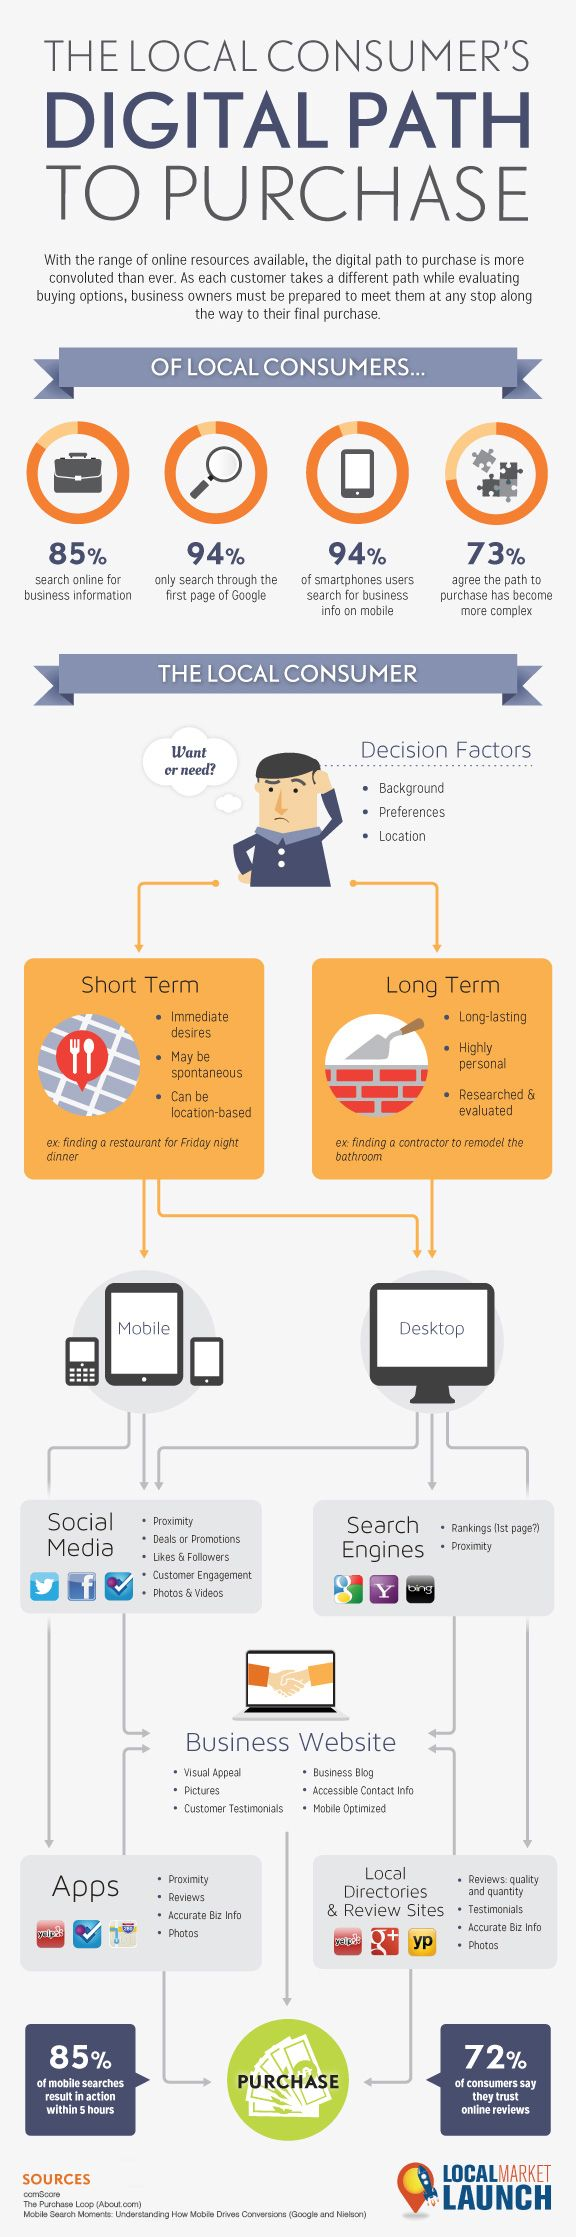 The Local Consumer's Path to Purchase [Infographic]